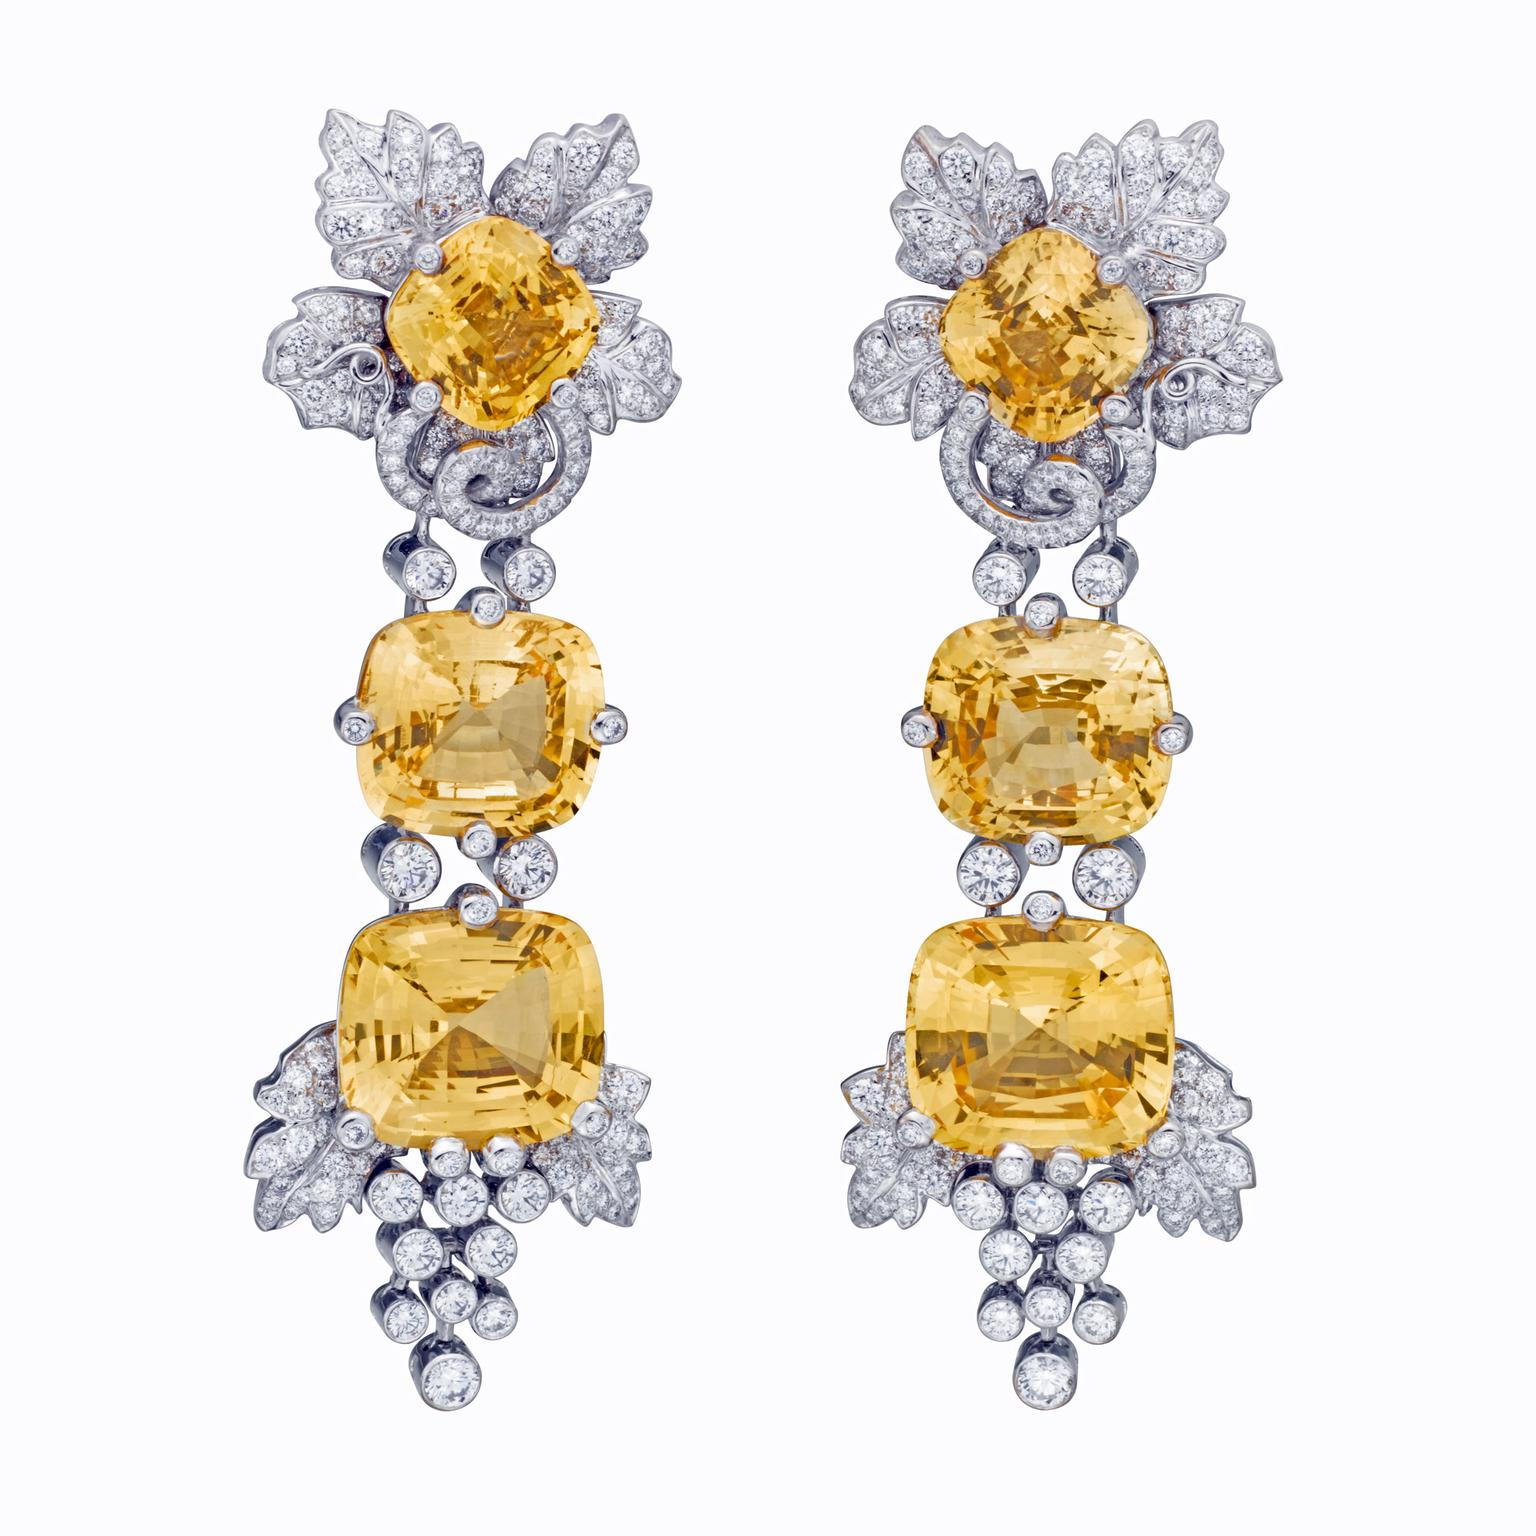 Van Cleef & Arpels Irene Sri Lankan sapphire and diamond earrings